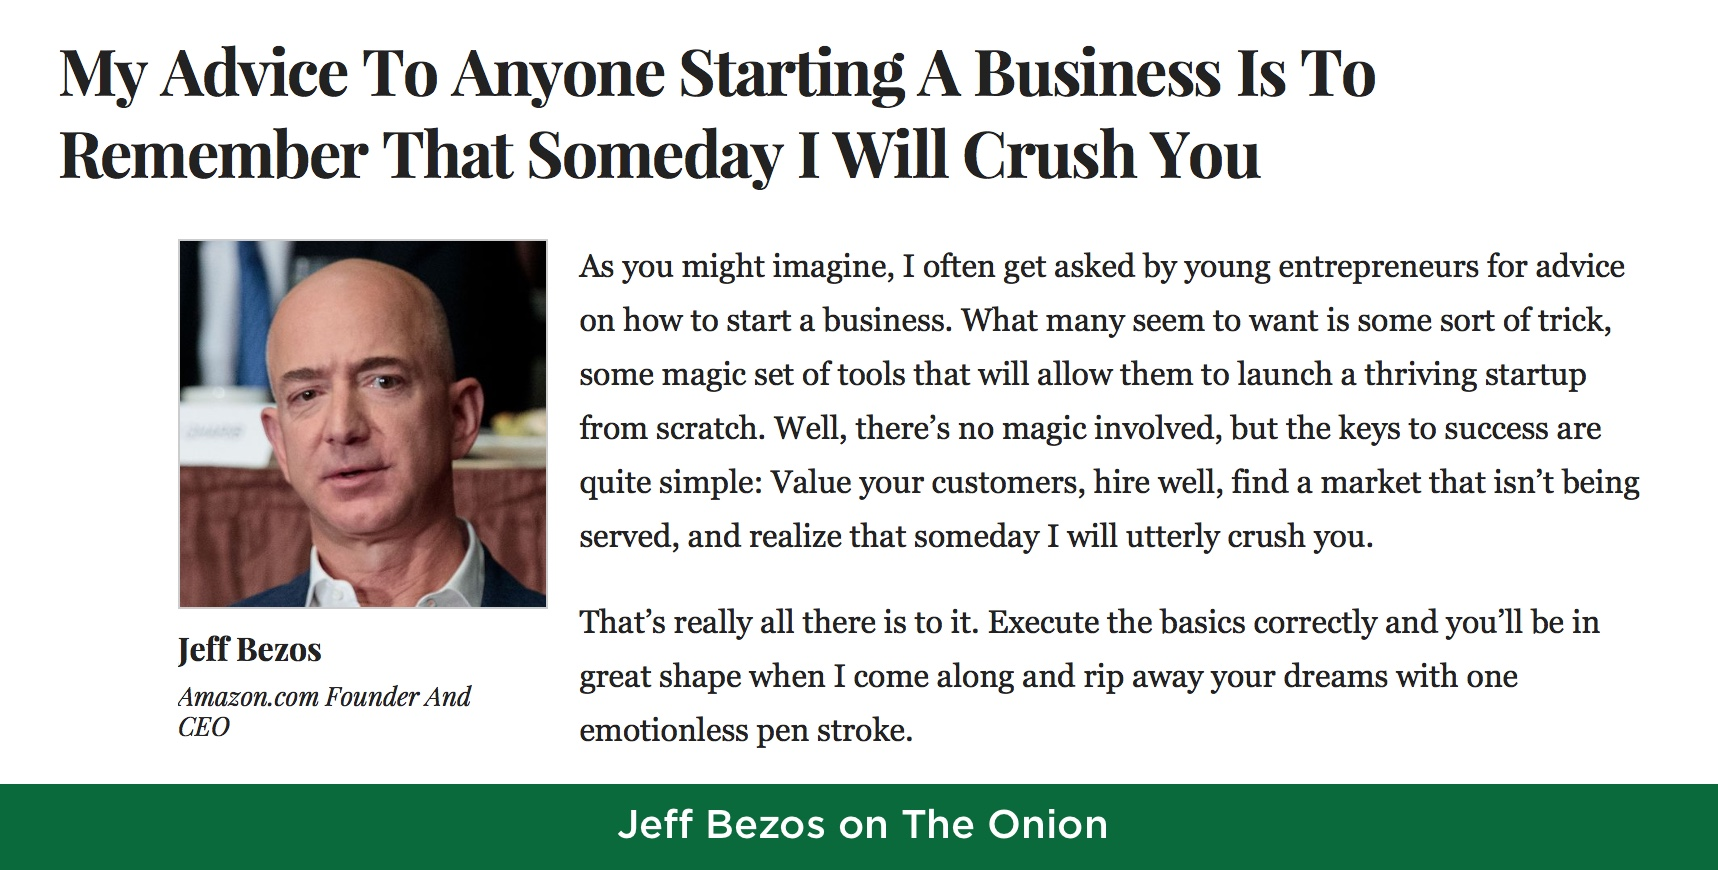 Jeff Bezos on Execution